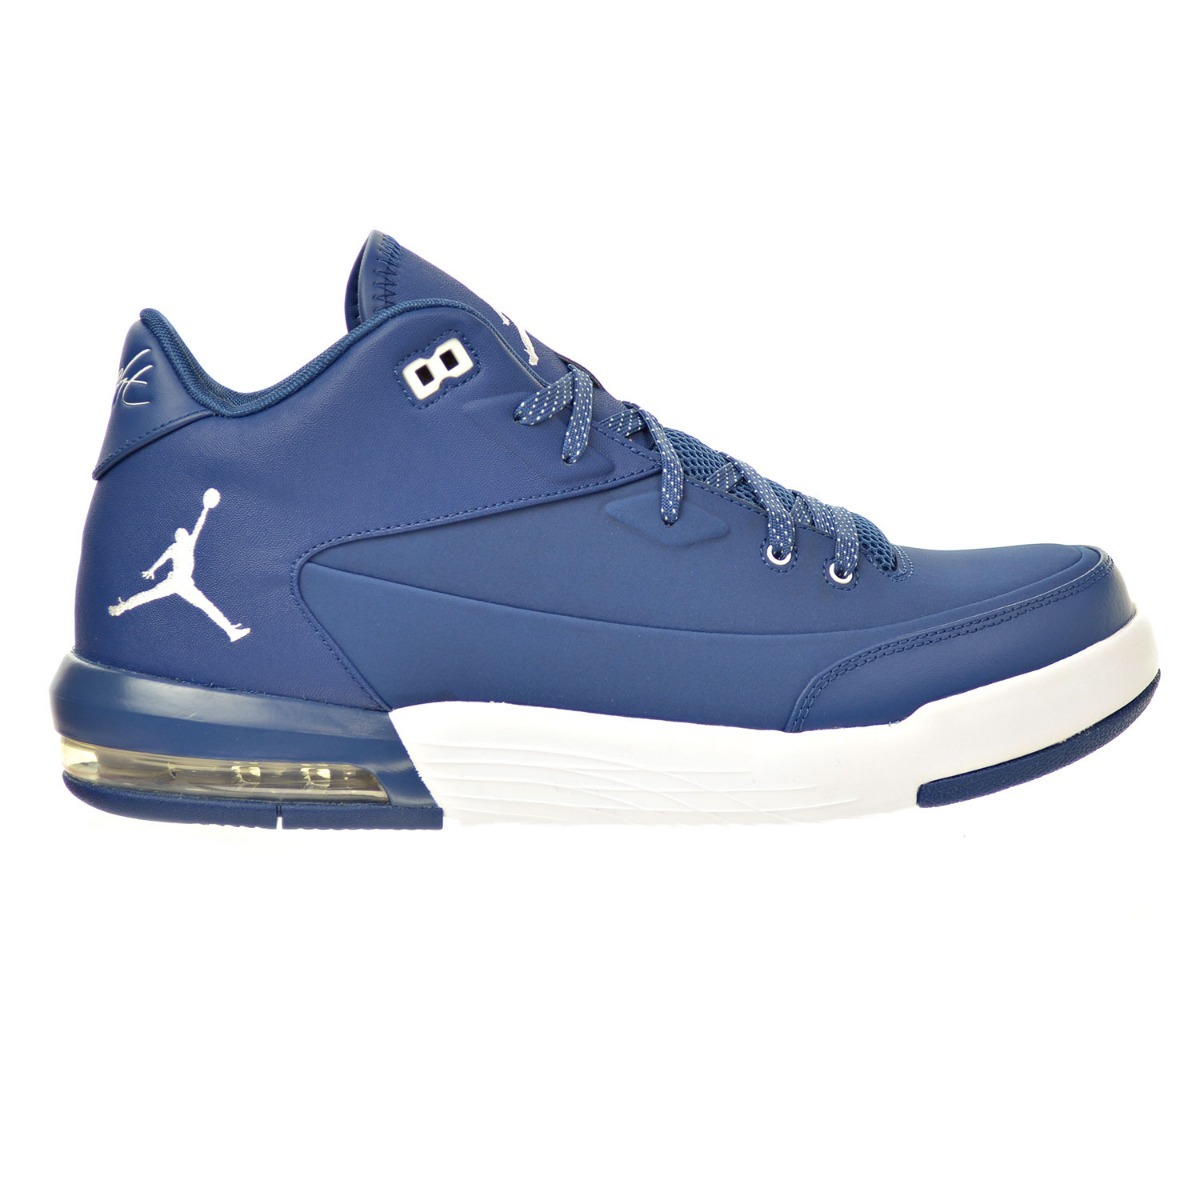 san francisco 66ea6 69688 Tenis Nike Air Jordan Flight Origin 3 Azul 820245-400